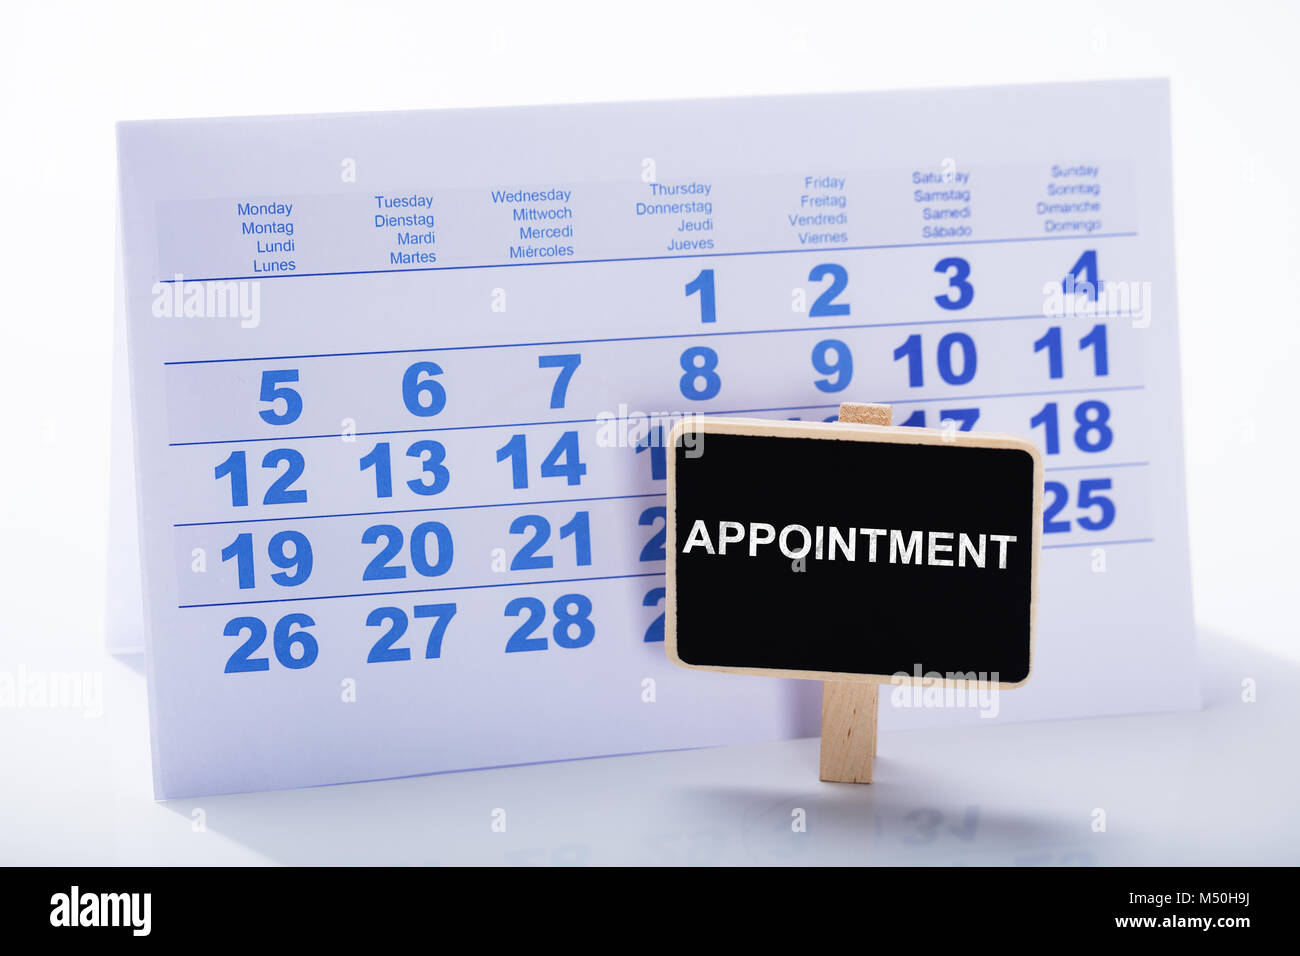 Miniature Appointment Placard In Front Of Calendar Against White Background - Stock Image